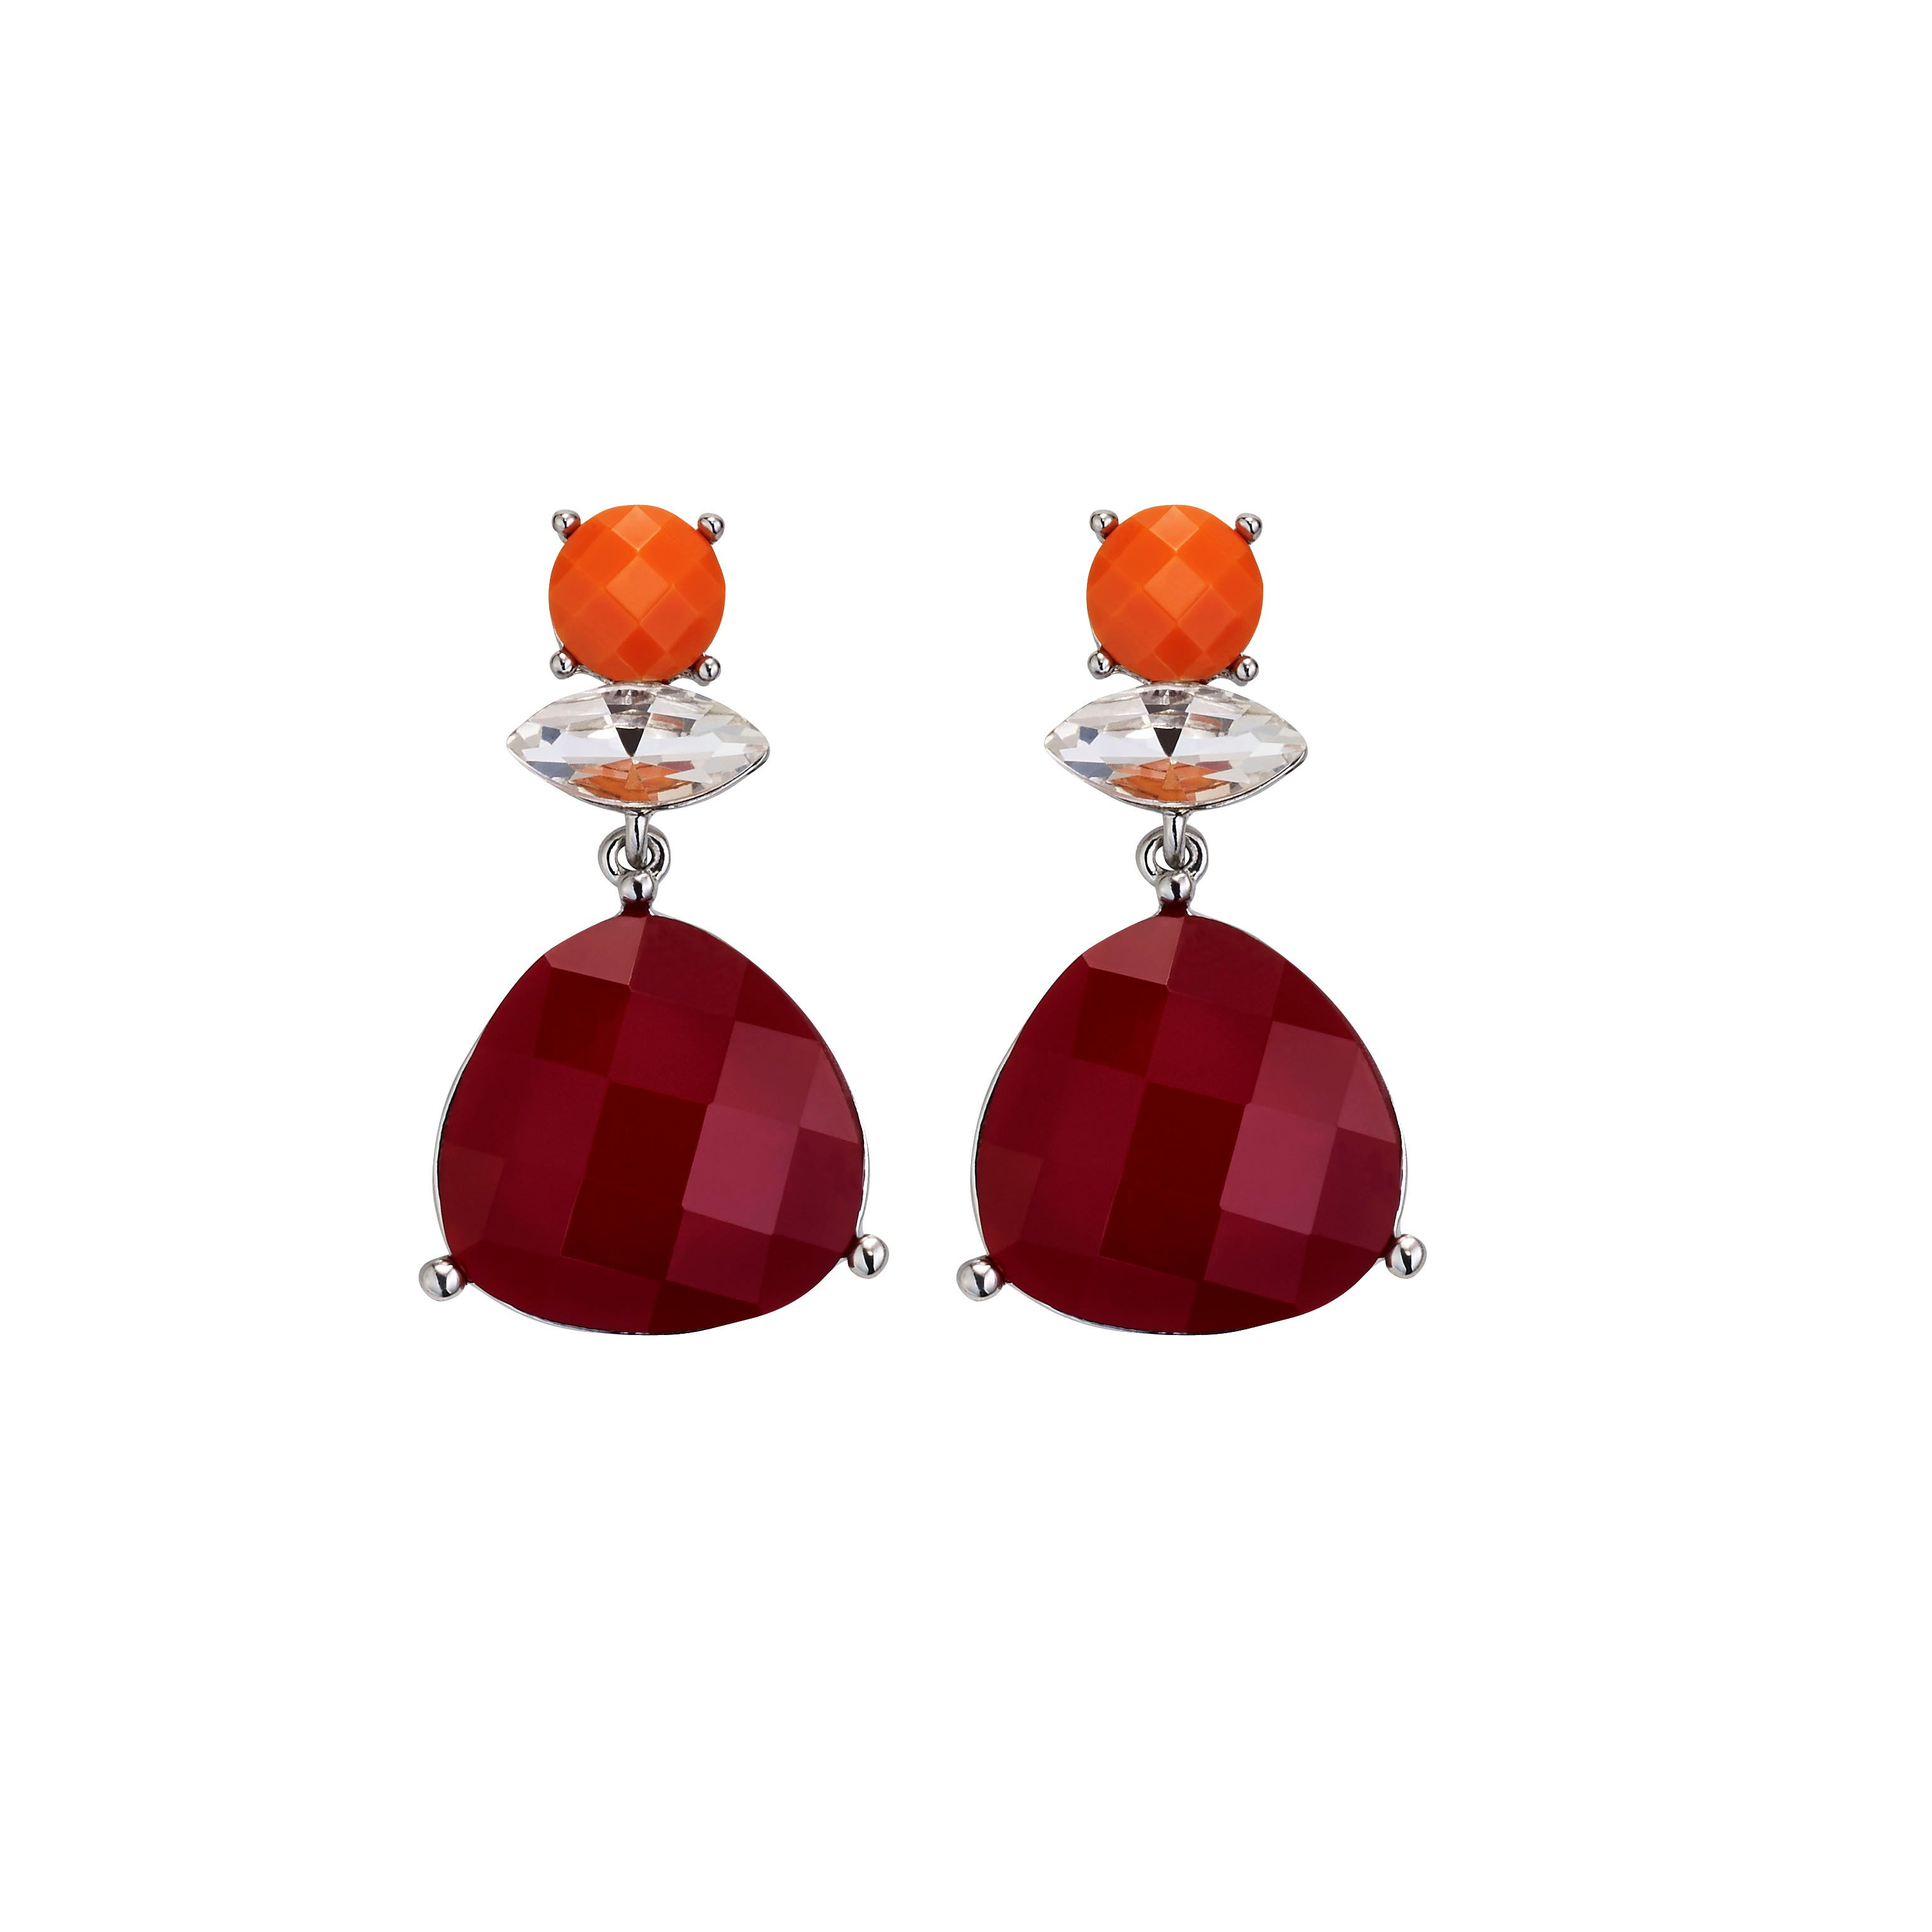 Tivanna coral crystal silver plated earrings